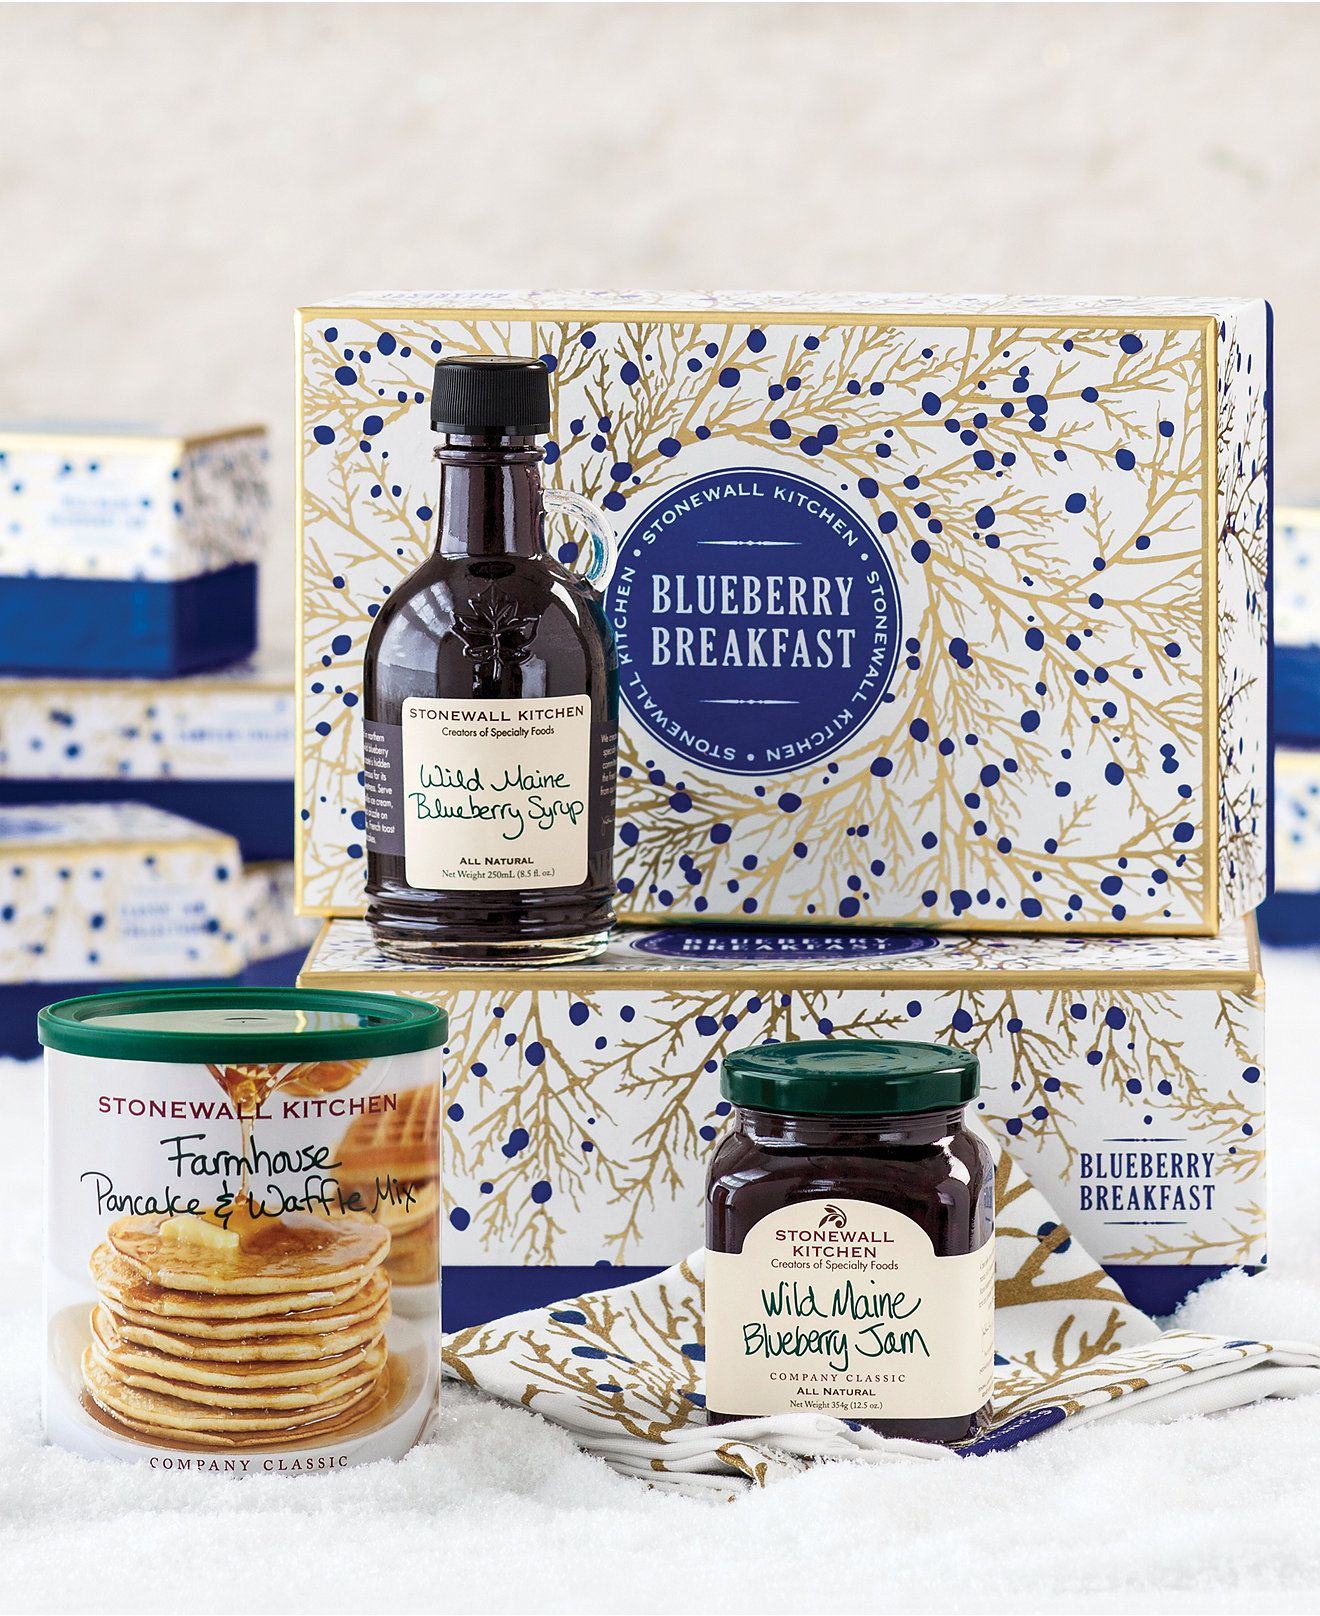 Stonewall Kitchen, Blueberry Breakfast Collection - Gourmet Food & Gifts - For The Home - Macy's